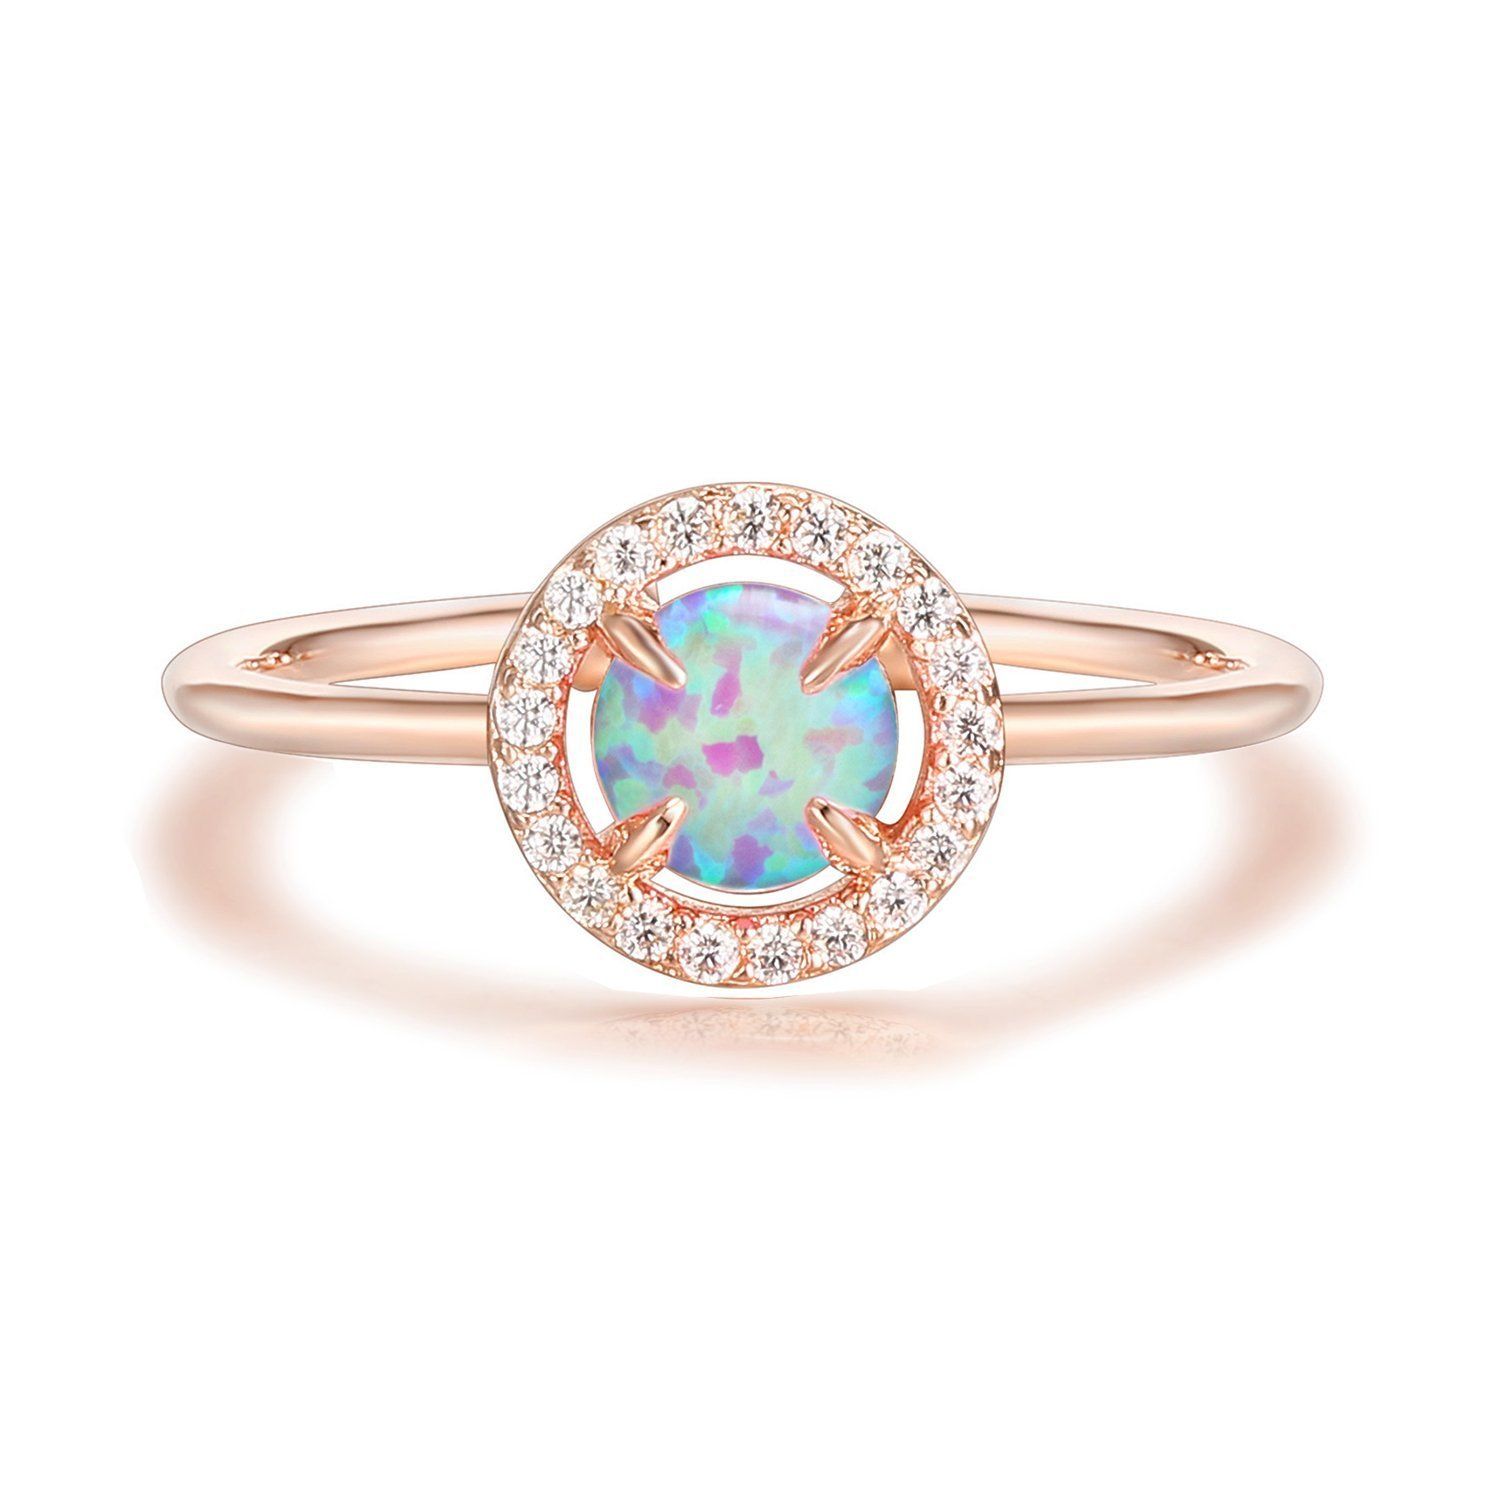 PAVOI 14K Gold Dipped Cubic Zirconia and Created Opal Ring TC58W